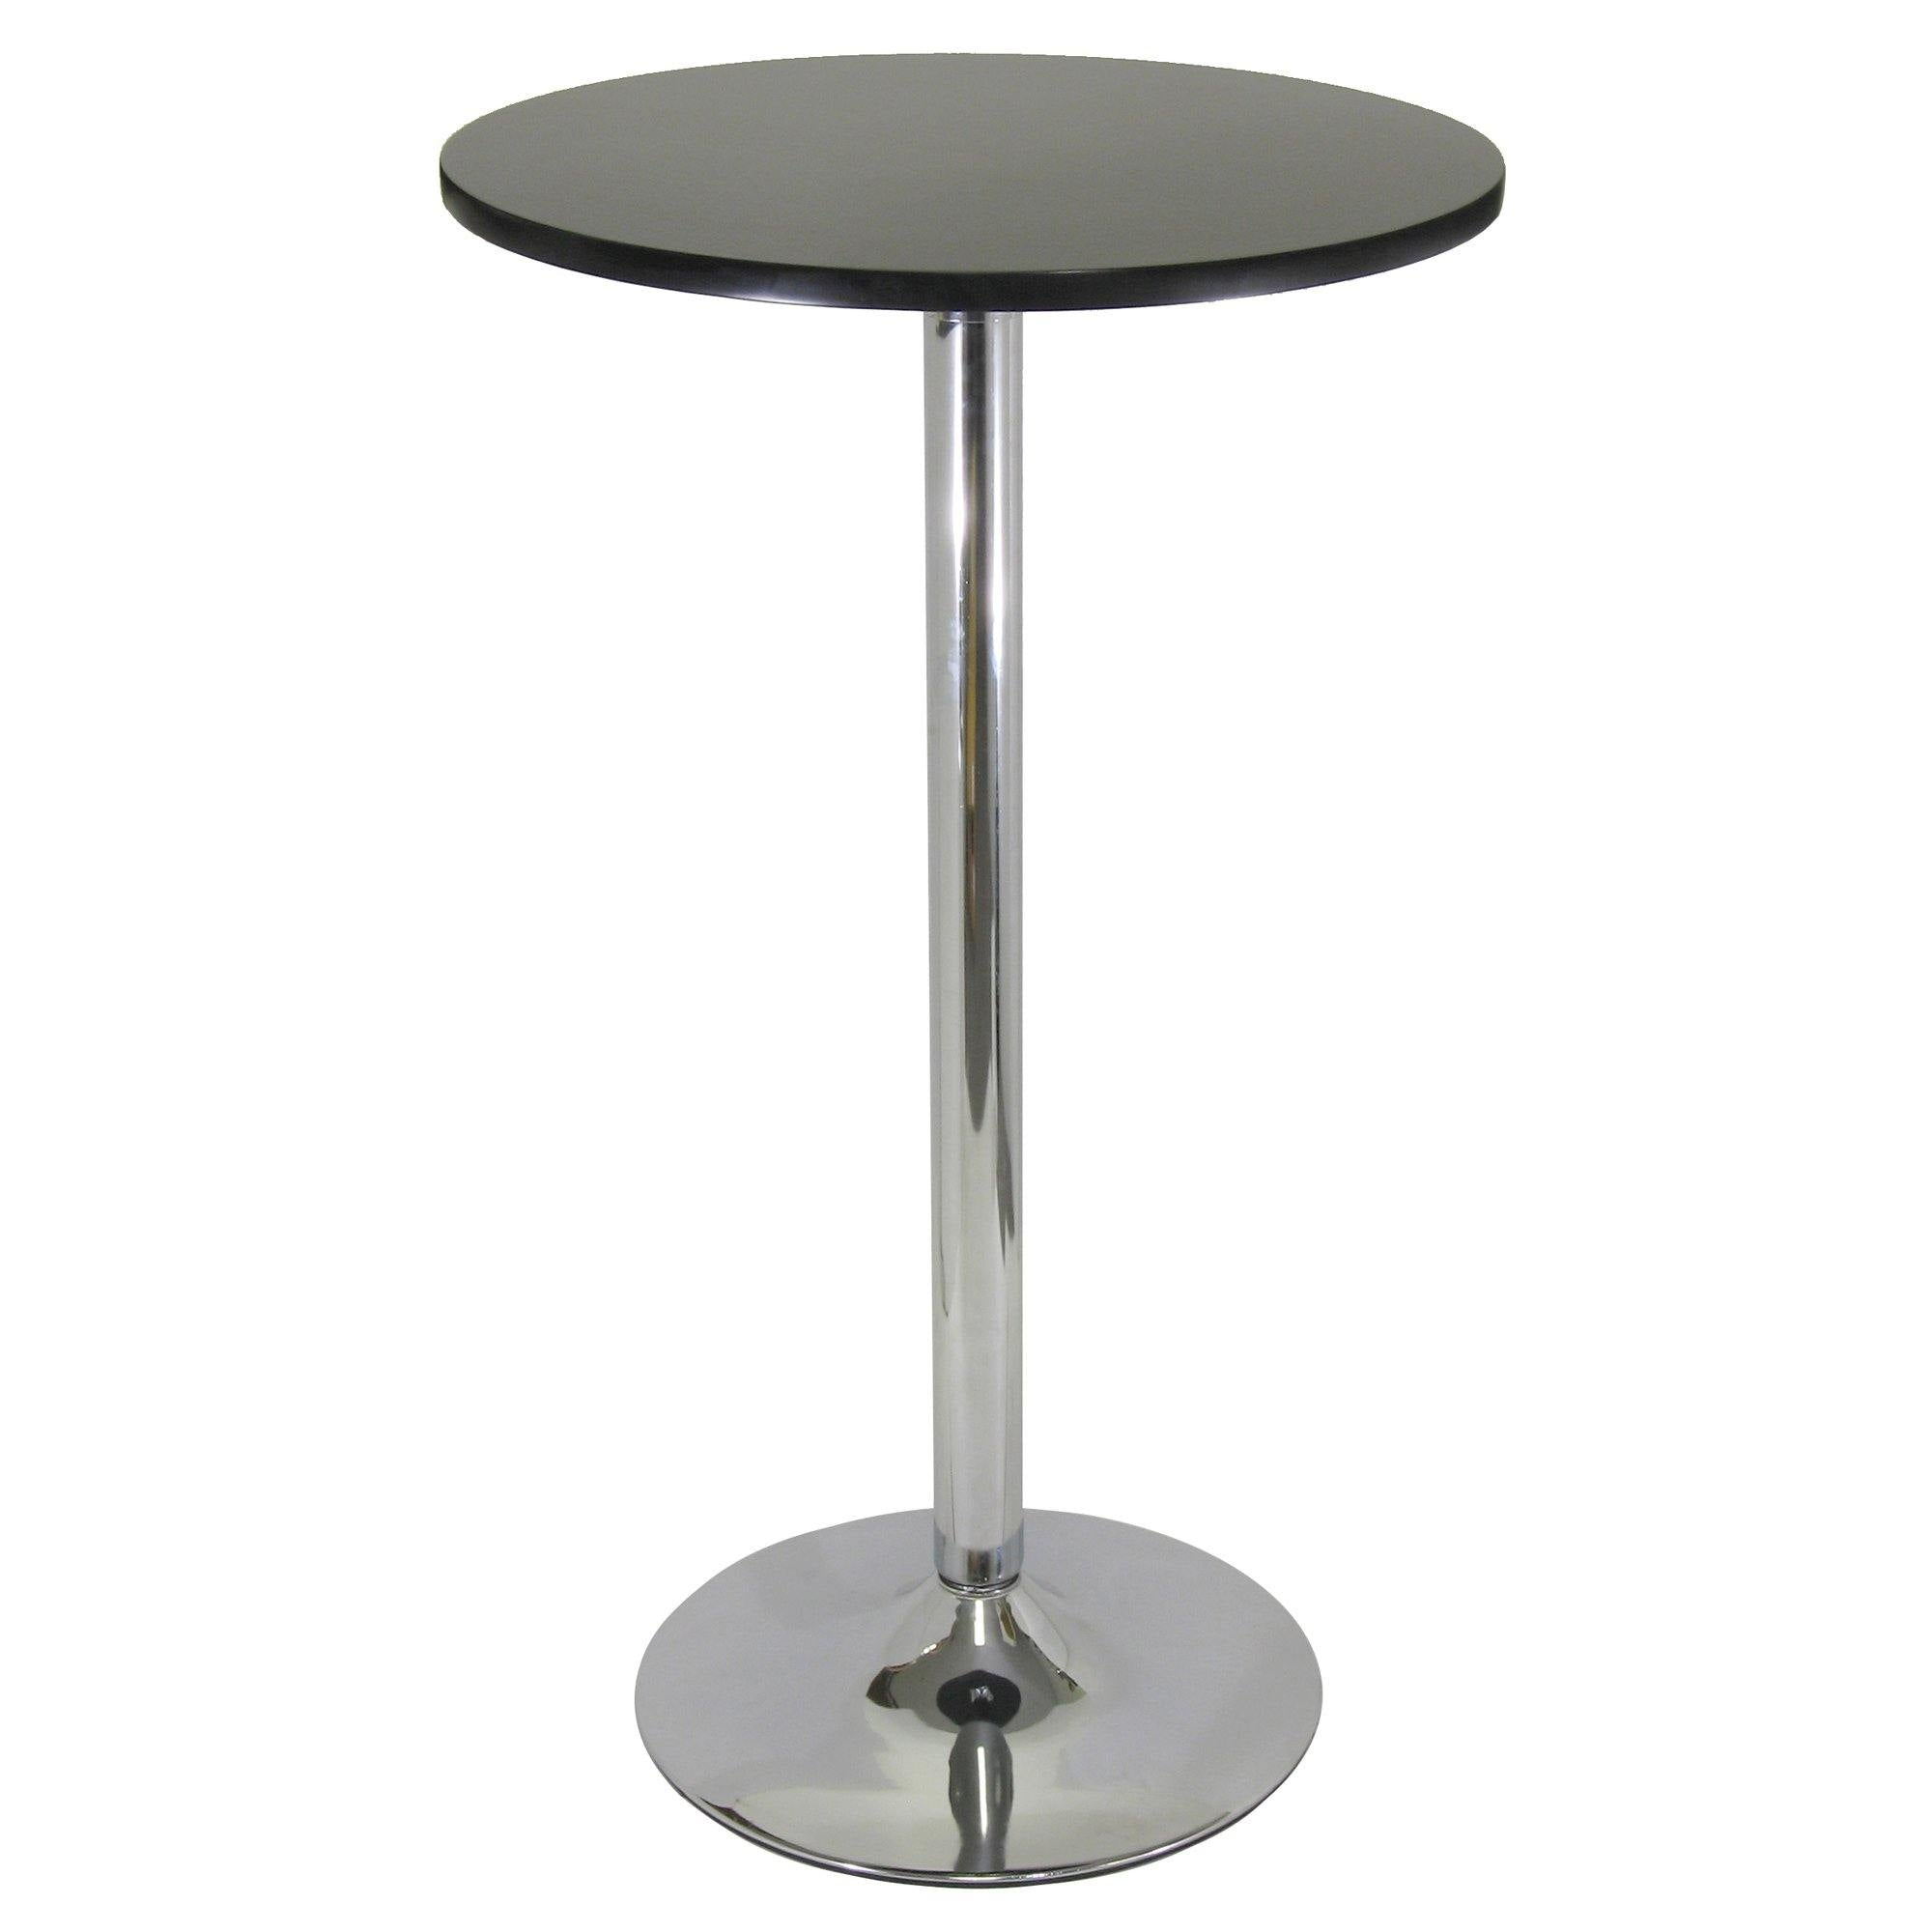 "Spectrum 24"" Round Pub Table, Black & Chrome"